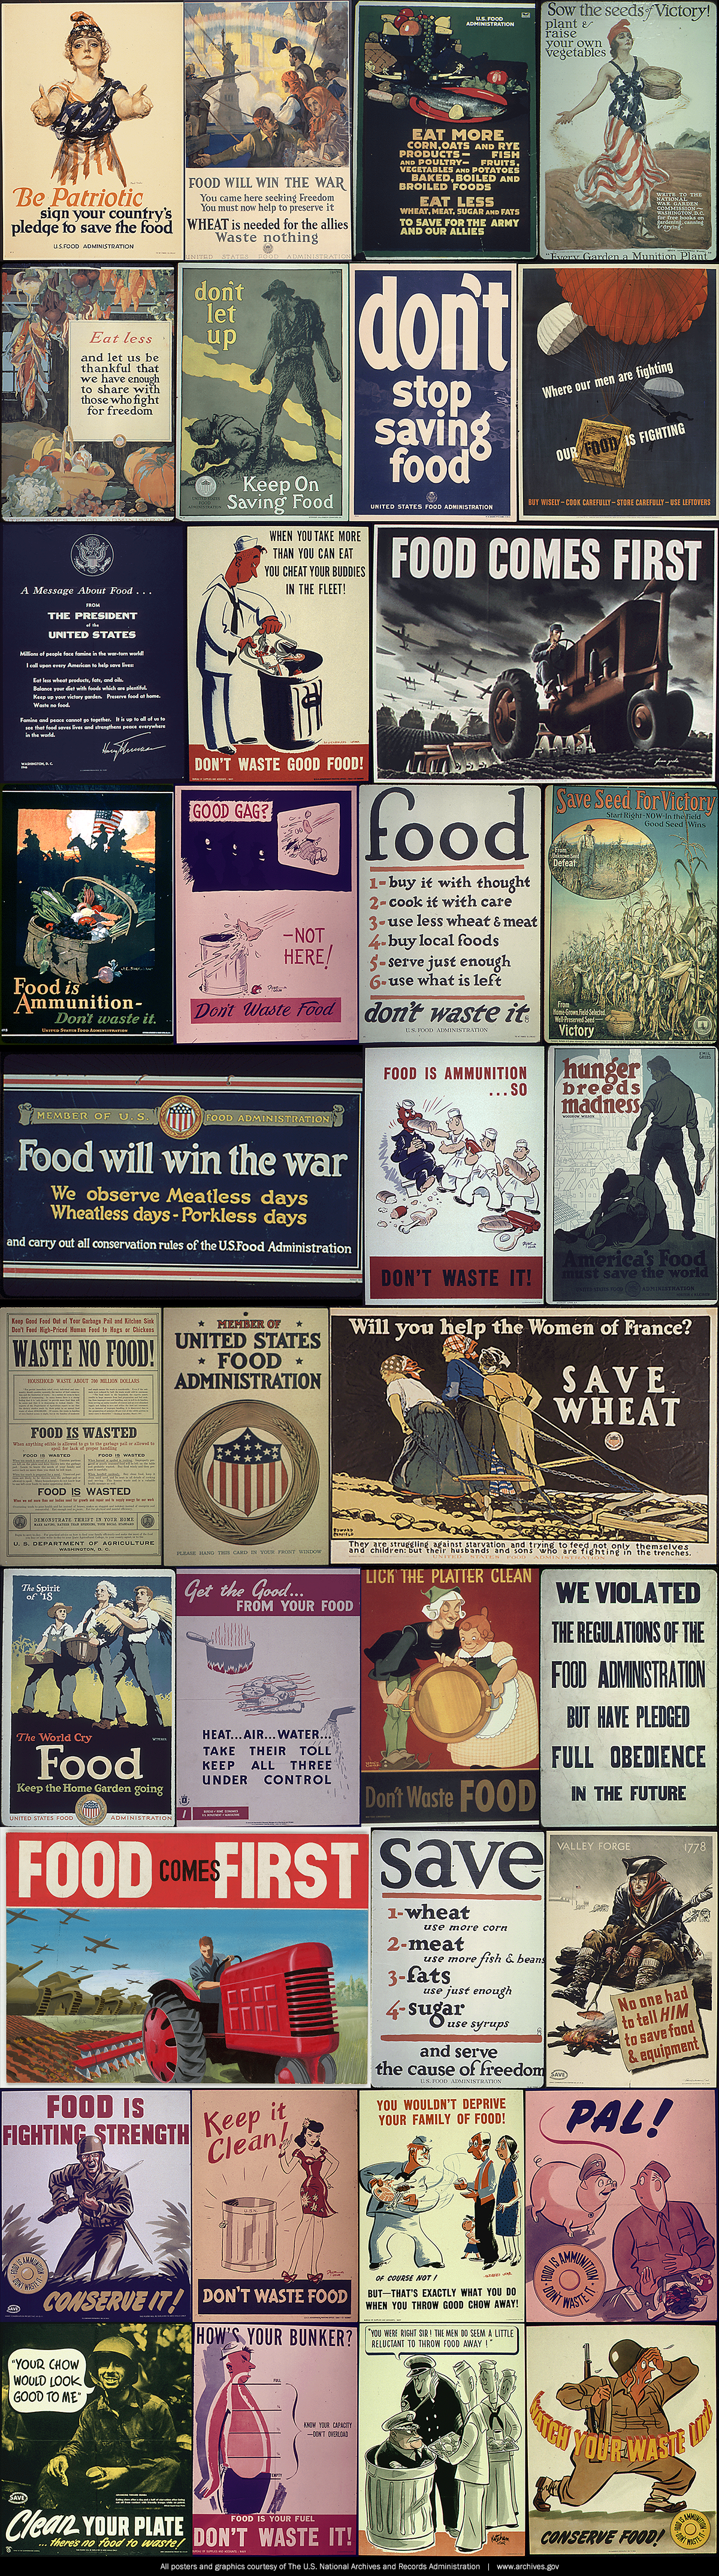 Posters from the US Food Administration from World War I and World War II